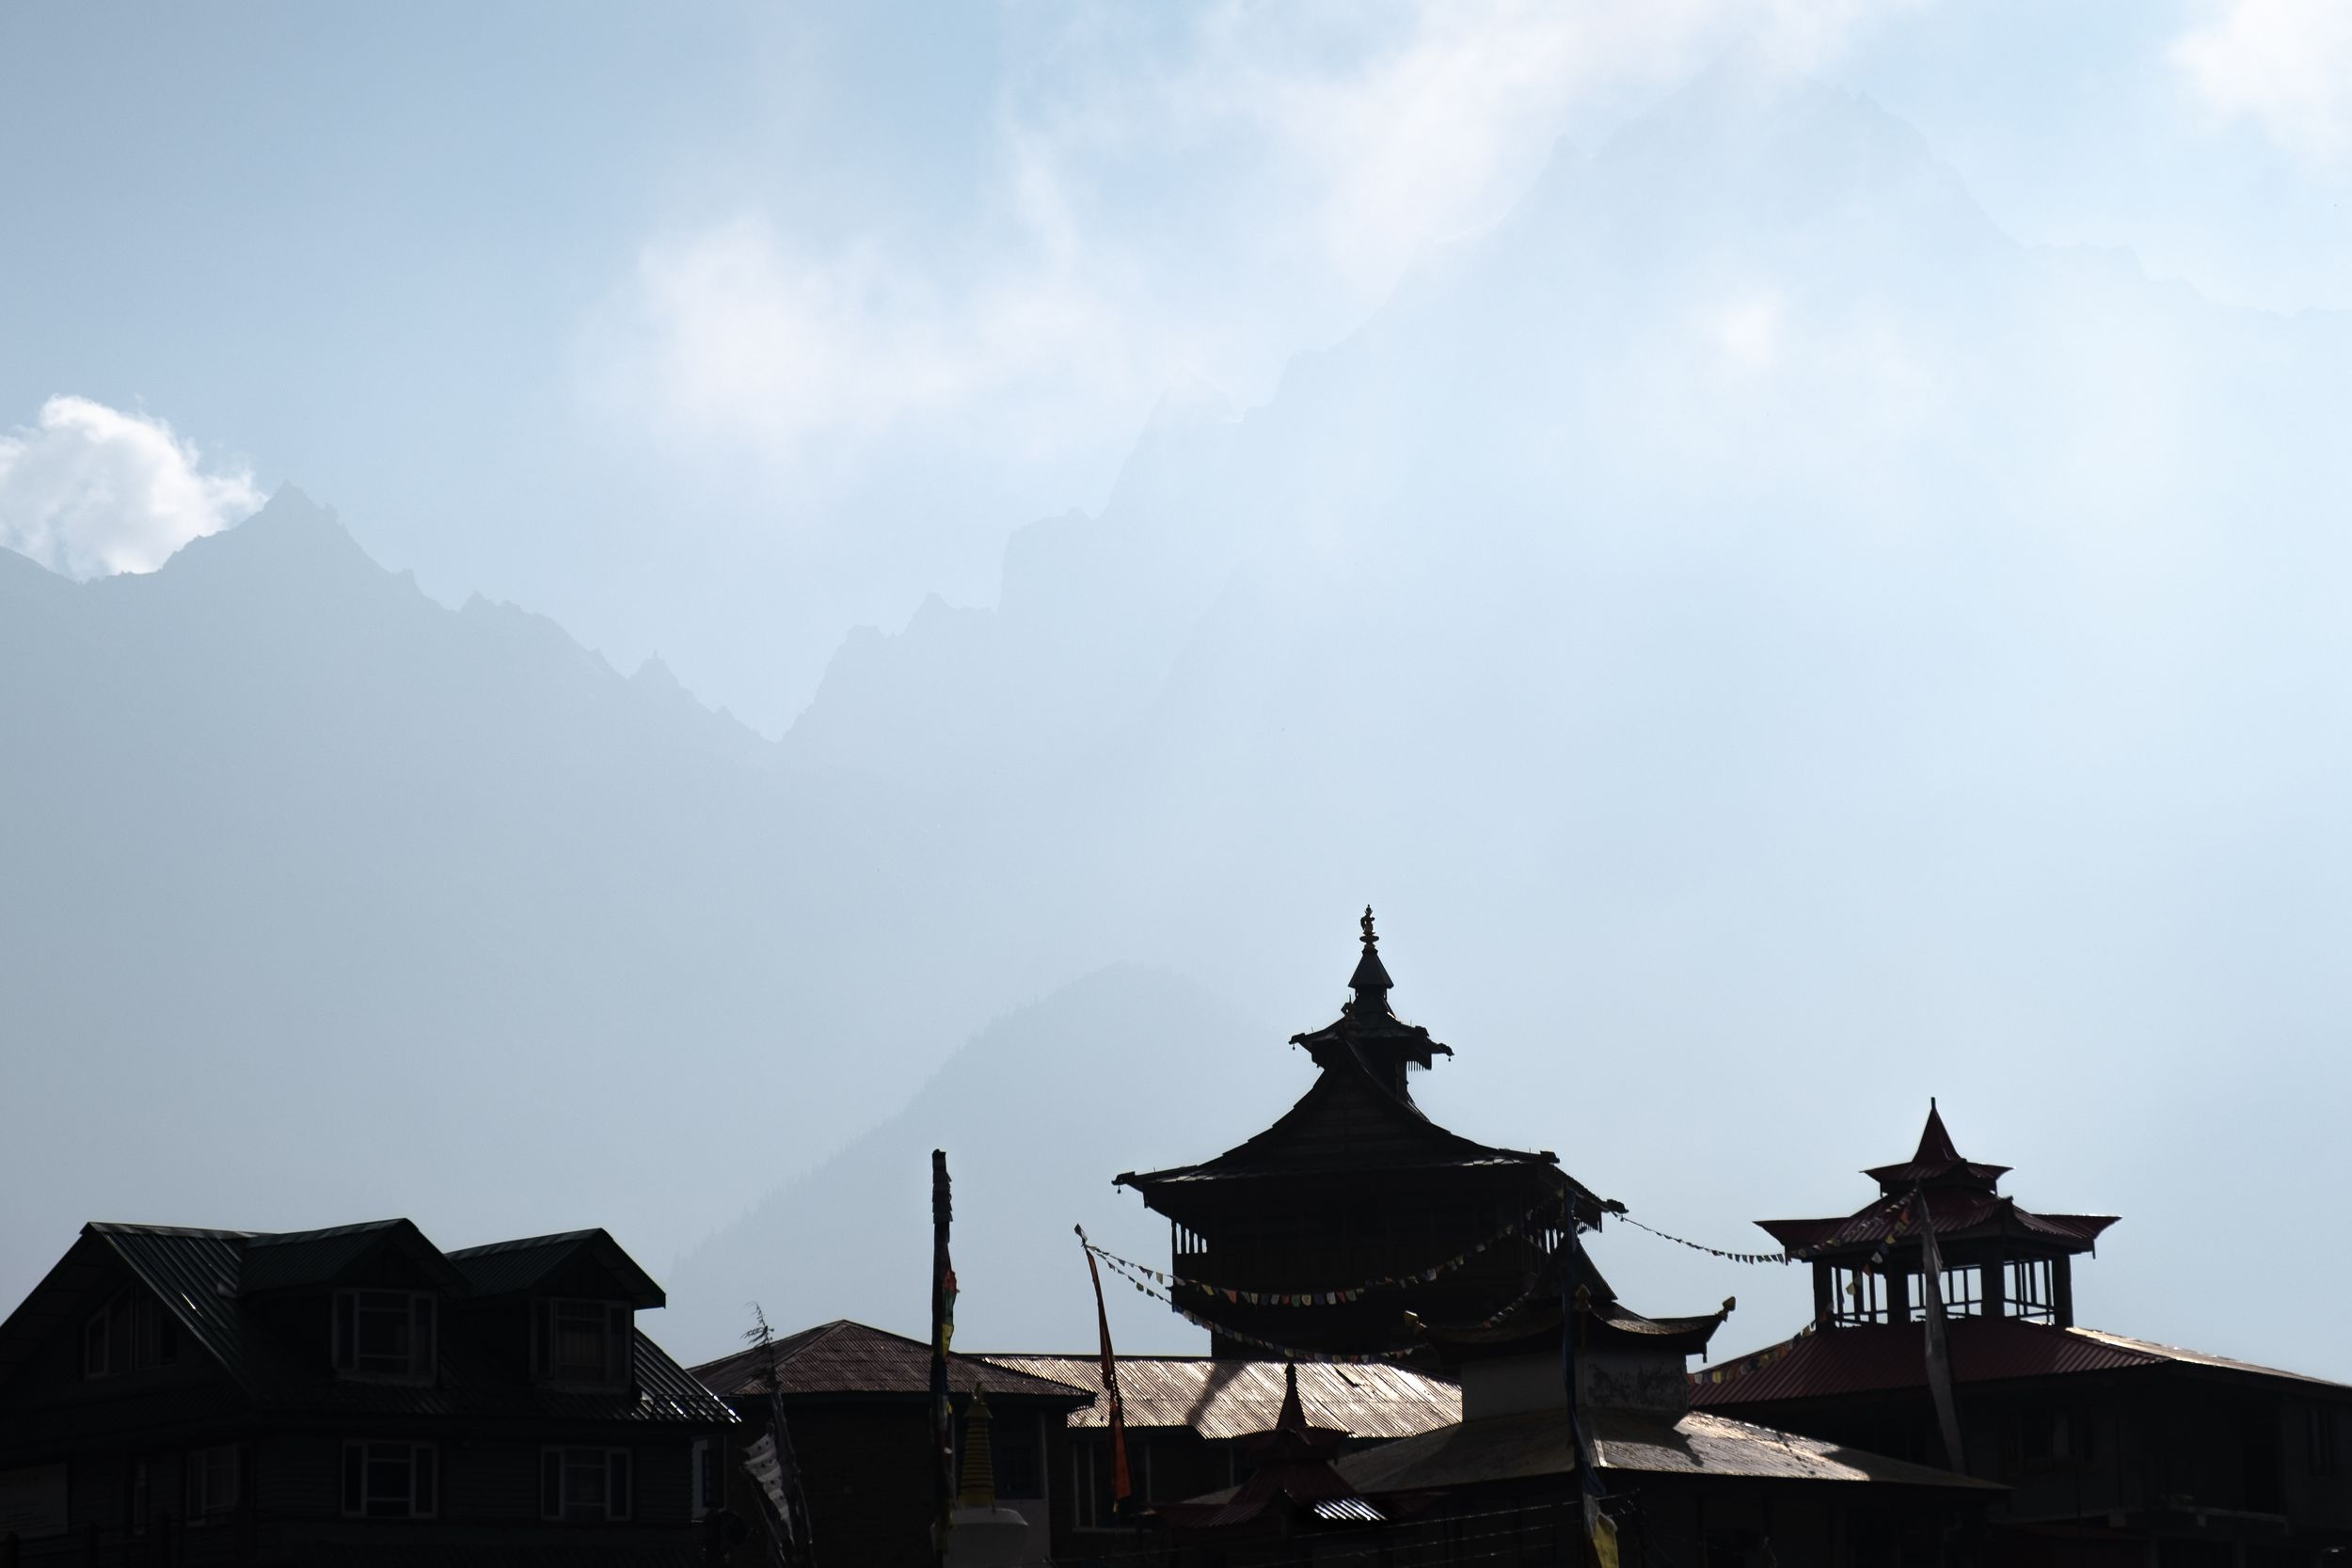 Kalpa, Spiti Valley, Mud, Pin Valley, Himachal Pradesh, India, Kaza, Chandra Tal, Rohtang pass, Manali